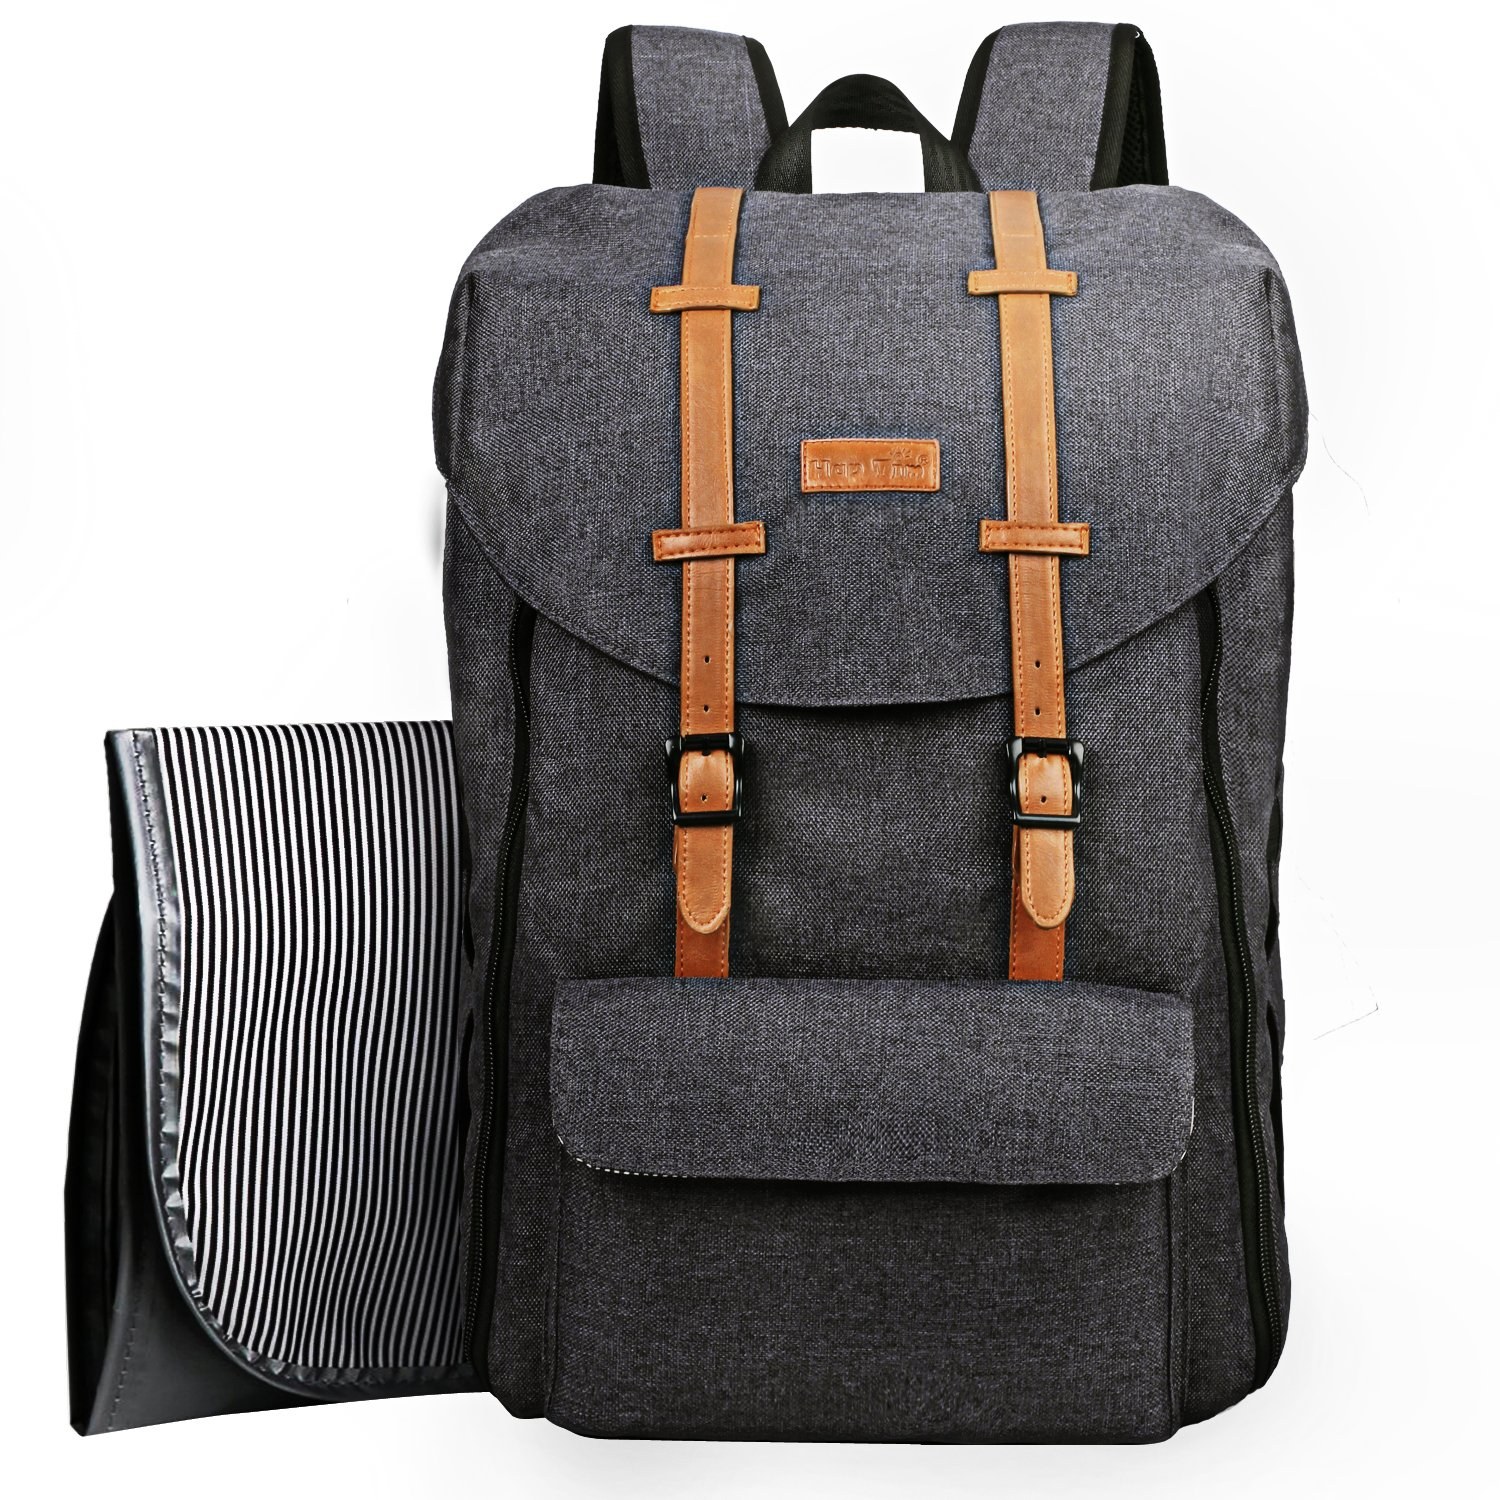 HapTim Travel Baby Diaper Bag Backpack, Large Capacity Double Deck DesignEasy Organize Comfortable Fashion for Newborn Mother FatherGrey 5312 Hap Tim